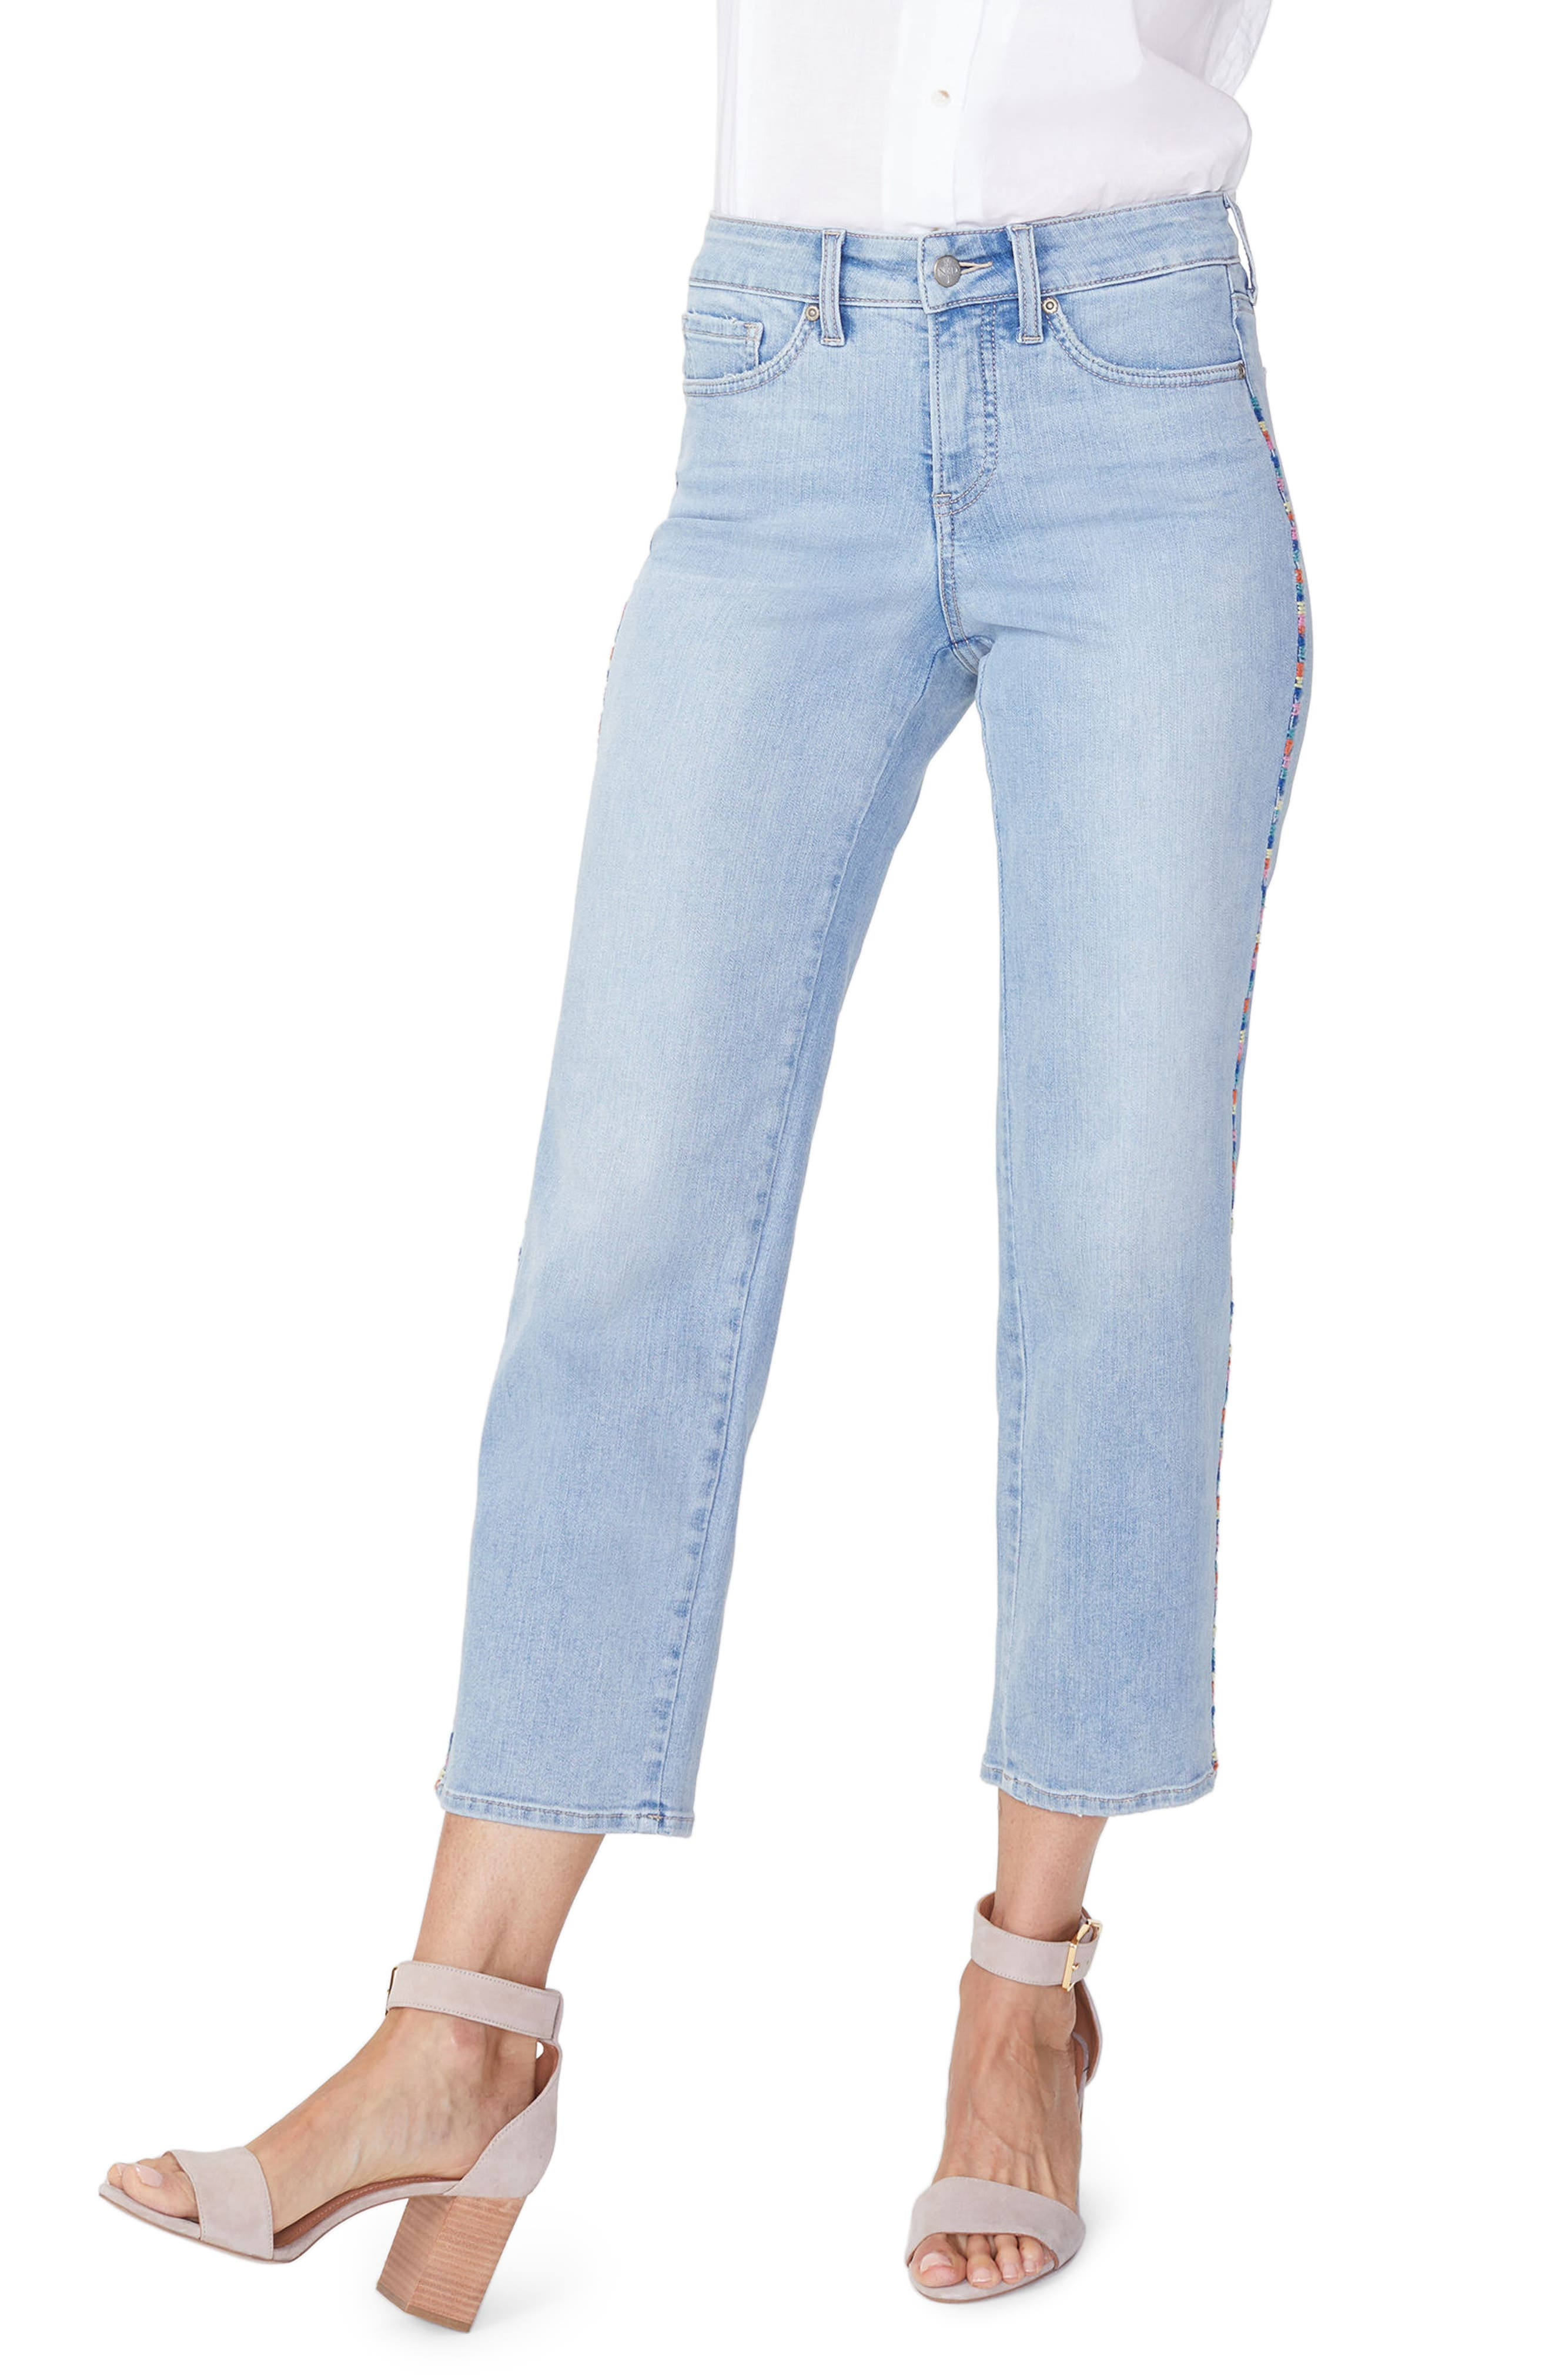 Jenna High Waist Embroidered Seam Ankle Straight Leg Jeans,                             Main thumbnail 1, color,                             423